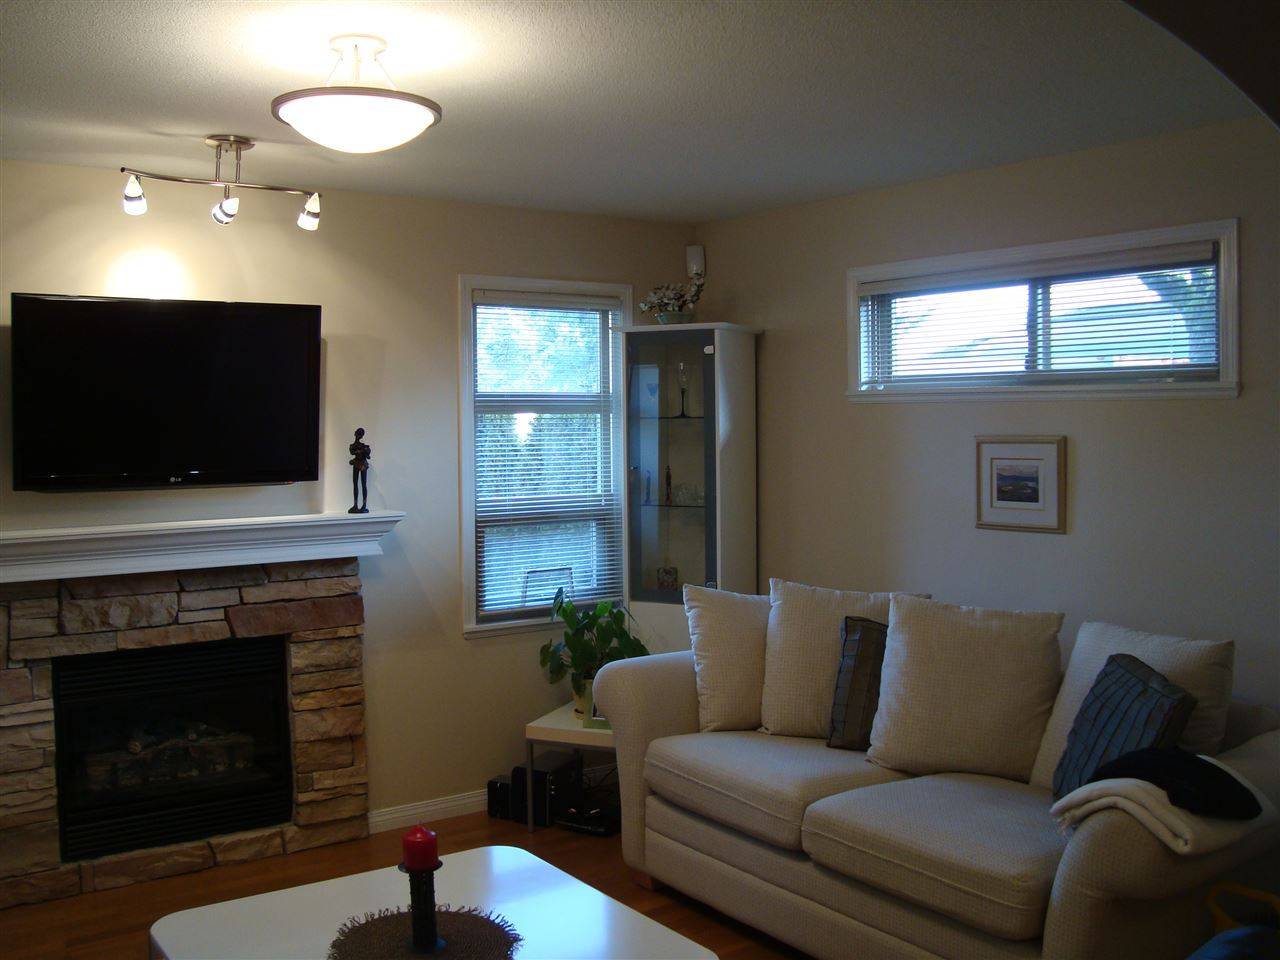 Photo 8: 7562 16TH Avenue in Burnaby: Edmonds BE House 1/2 Duplex for sale (Burnaby East)  : MLS® # R2022922